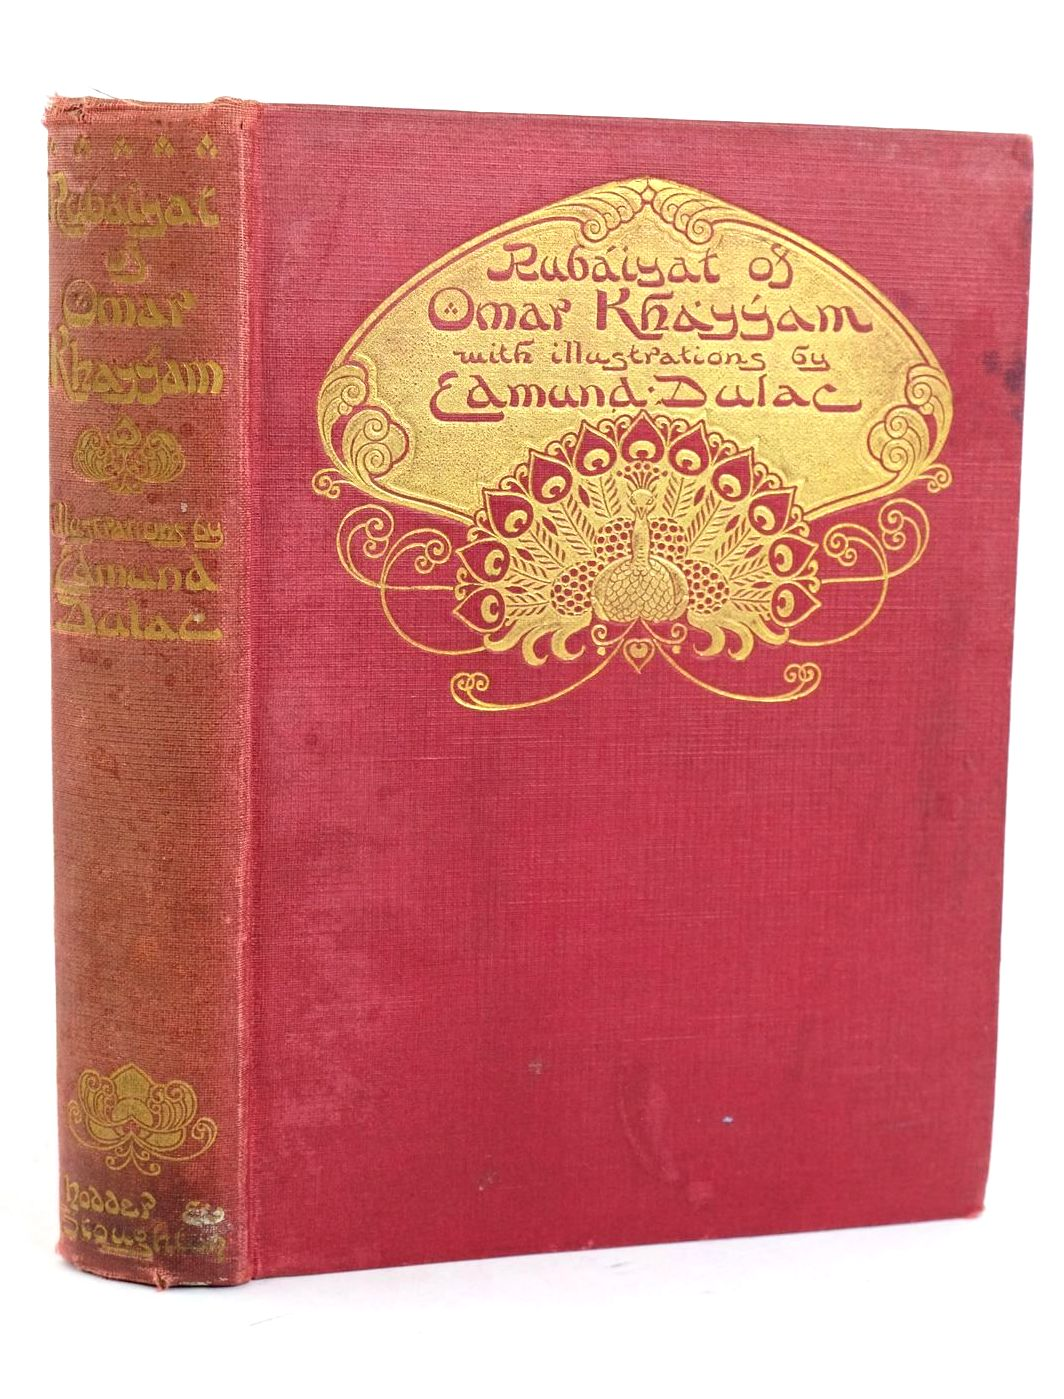 Photo of RUBAIYAT OF OMAR KHAYYAM written by Khayyam, Omar Fitzgerald, Edward illustrated by Dulac, Edmund published by Hodder & Stoughton (STOCK CODE: 1318955)  for sale by Stella & Rose's Books